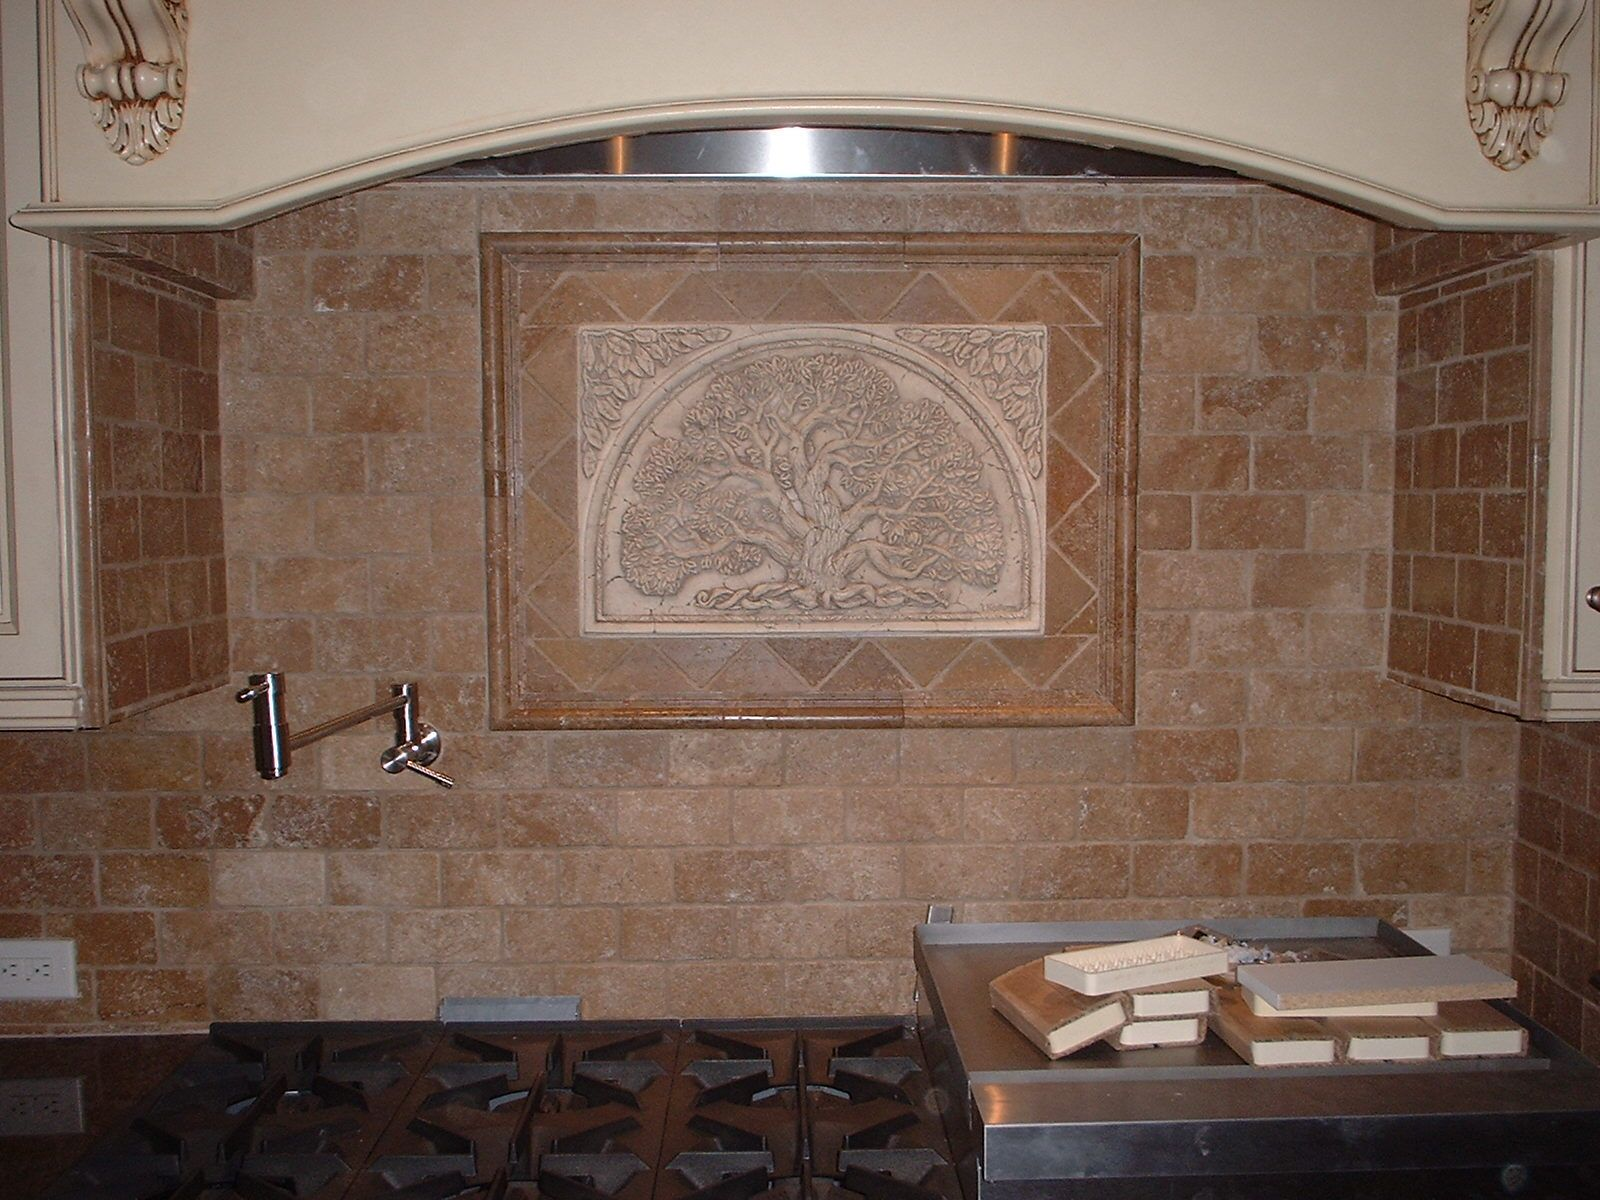 Wallpaper kitchen backsplash ideas backsplash designs for Kitchen backsplash ideas will enhance visual kitchen